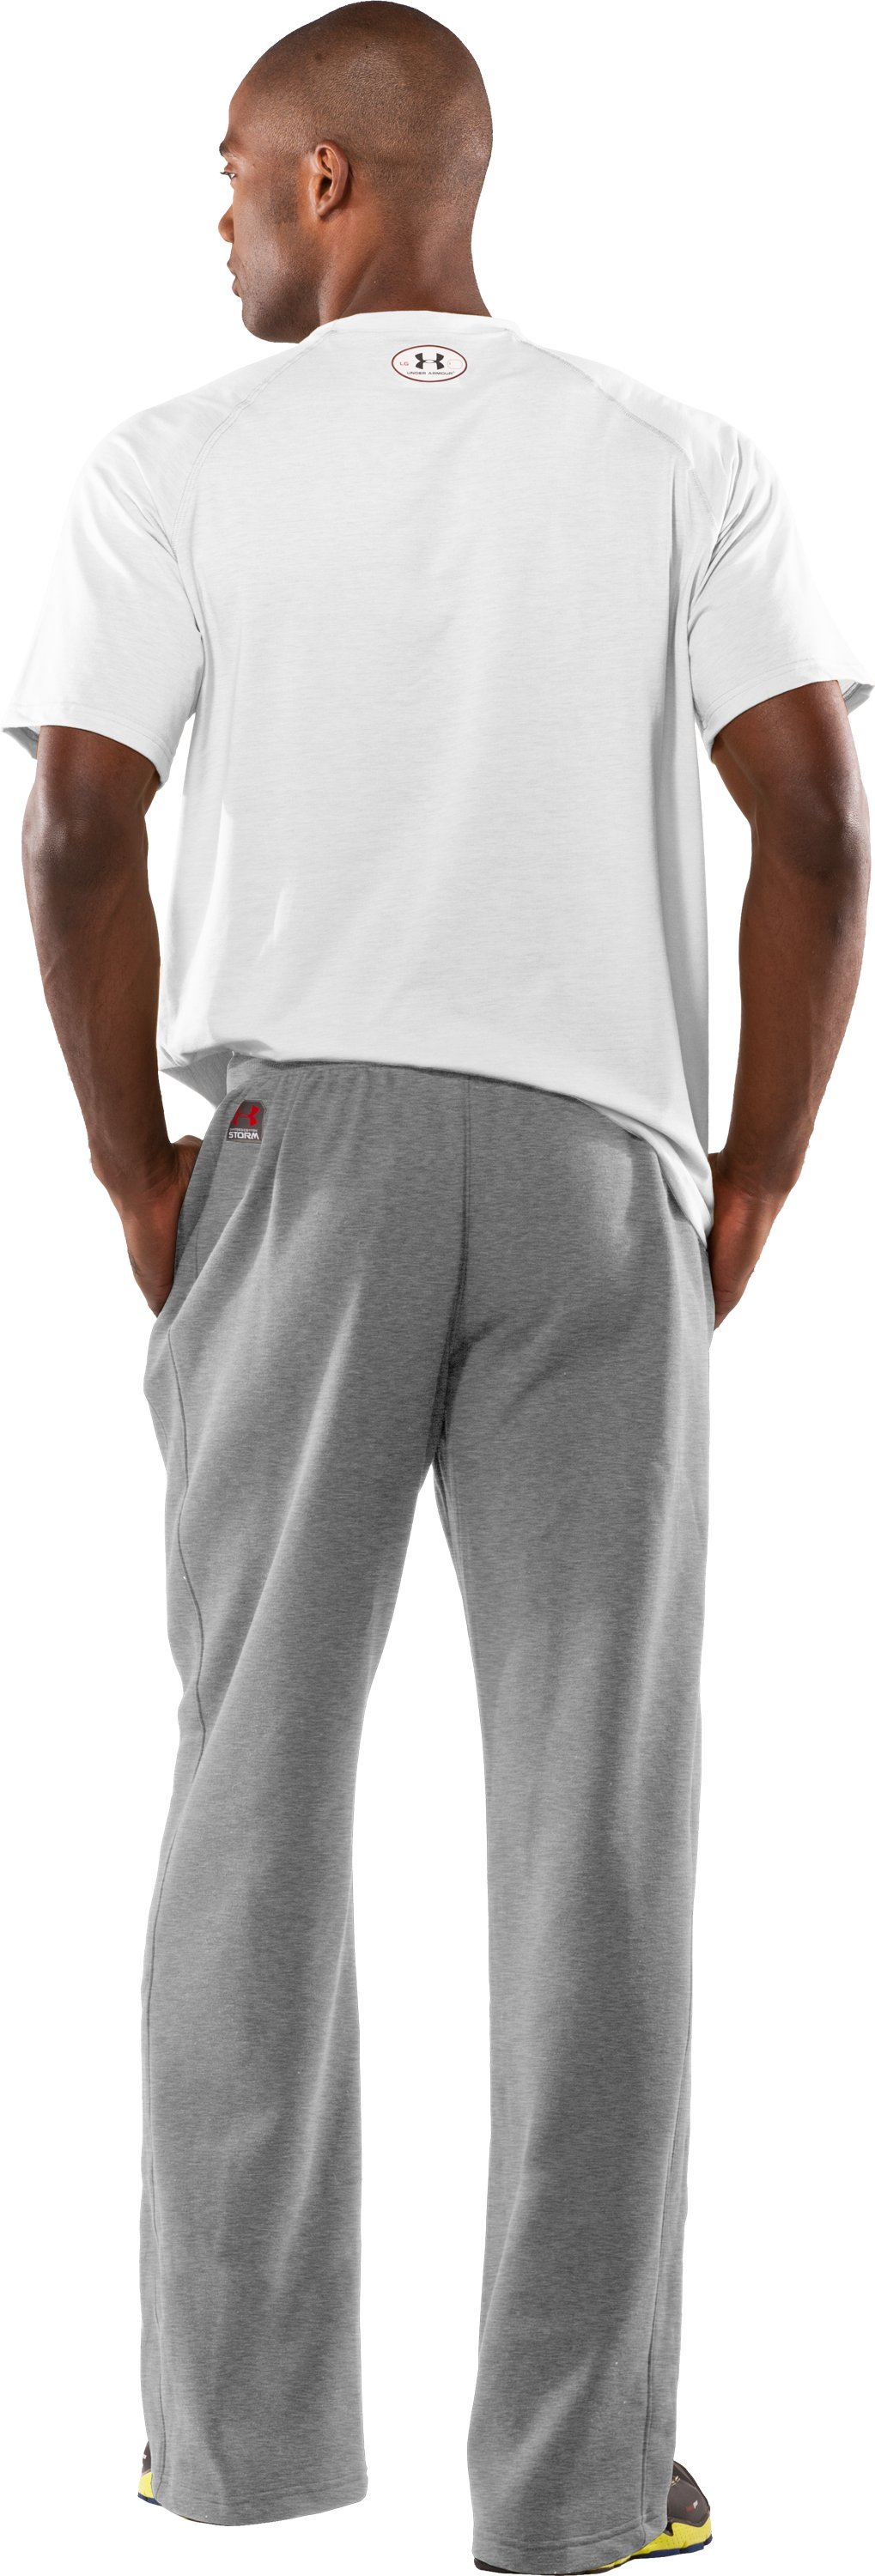 Men's Team Charged Cotton® Storm Pants, True Gray Heather, Back